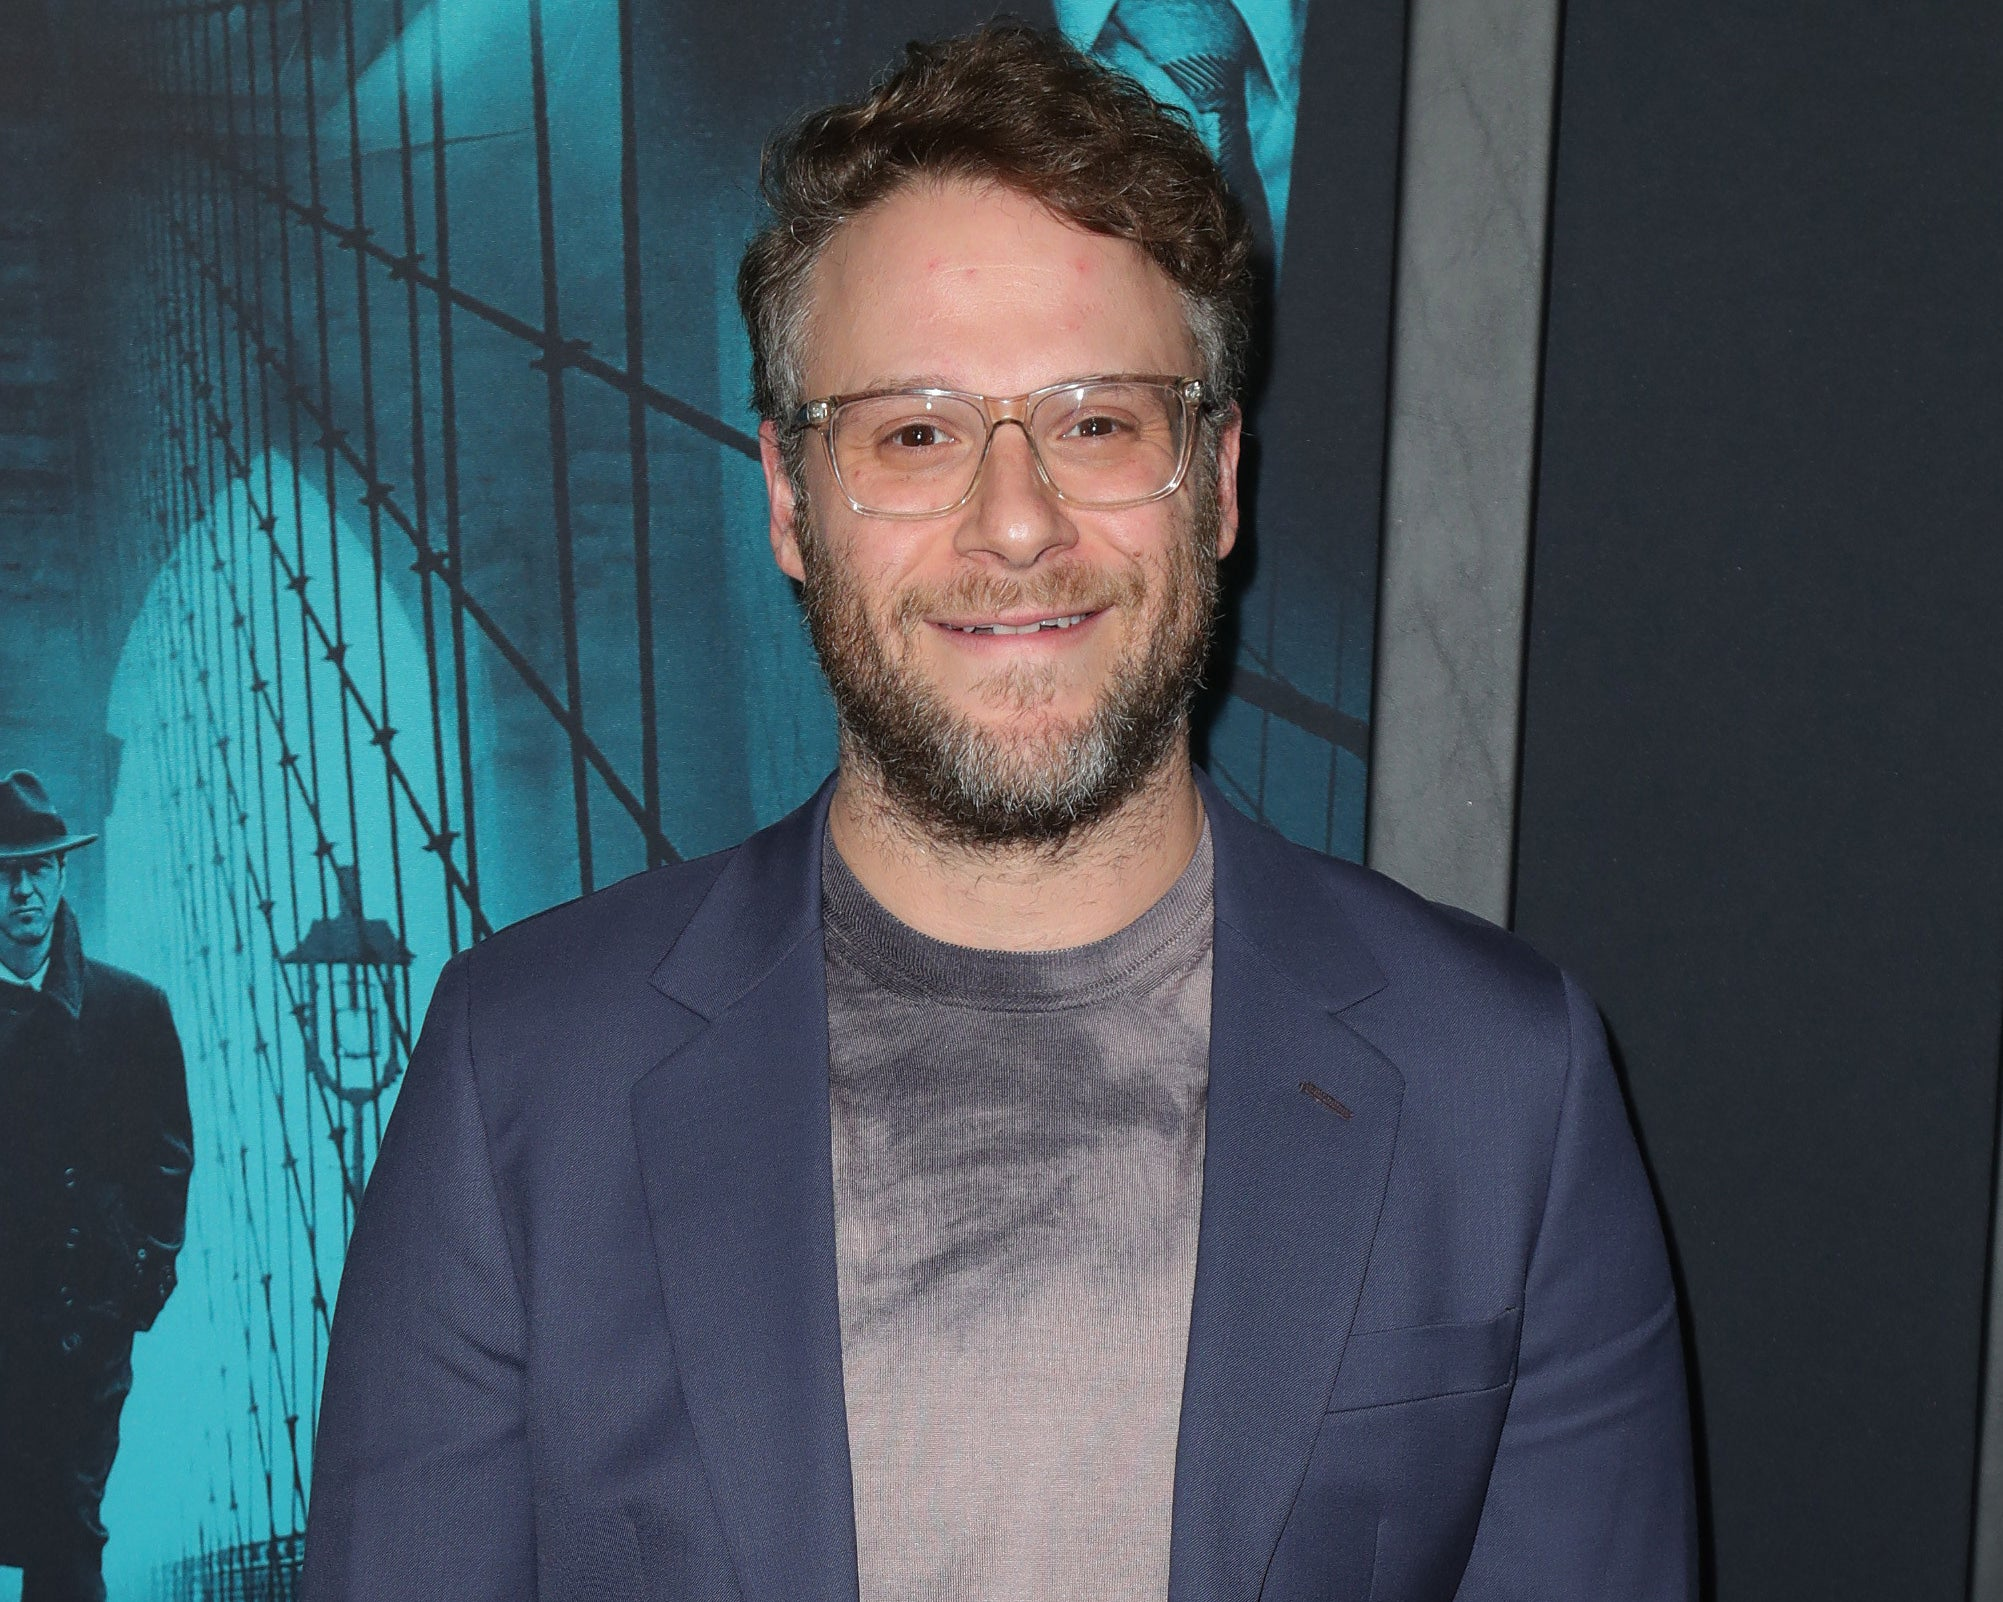 Seth smiles while wearing a blazer and grey tie dye t-shirt